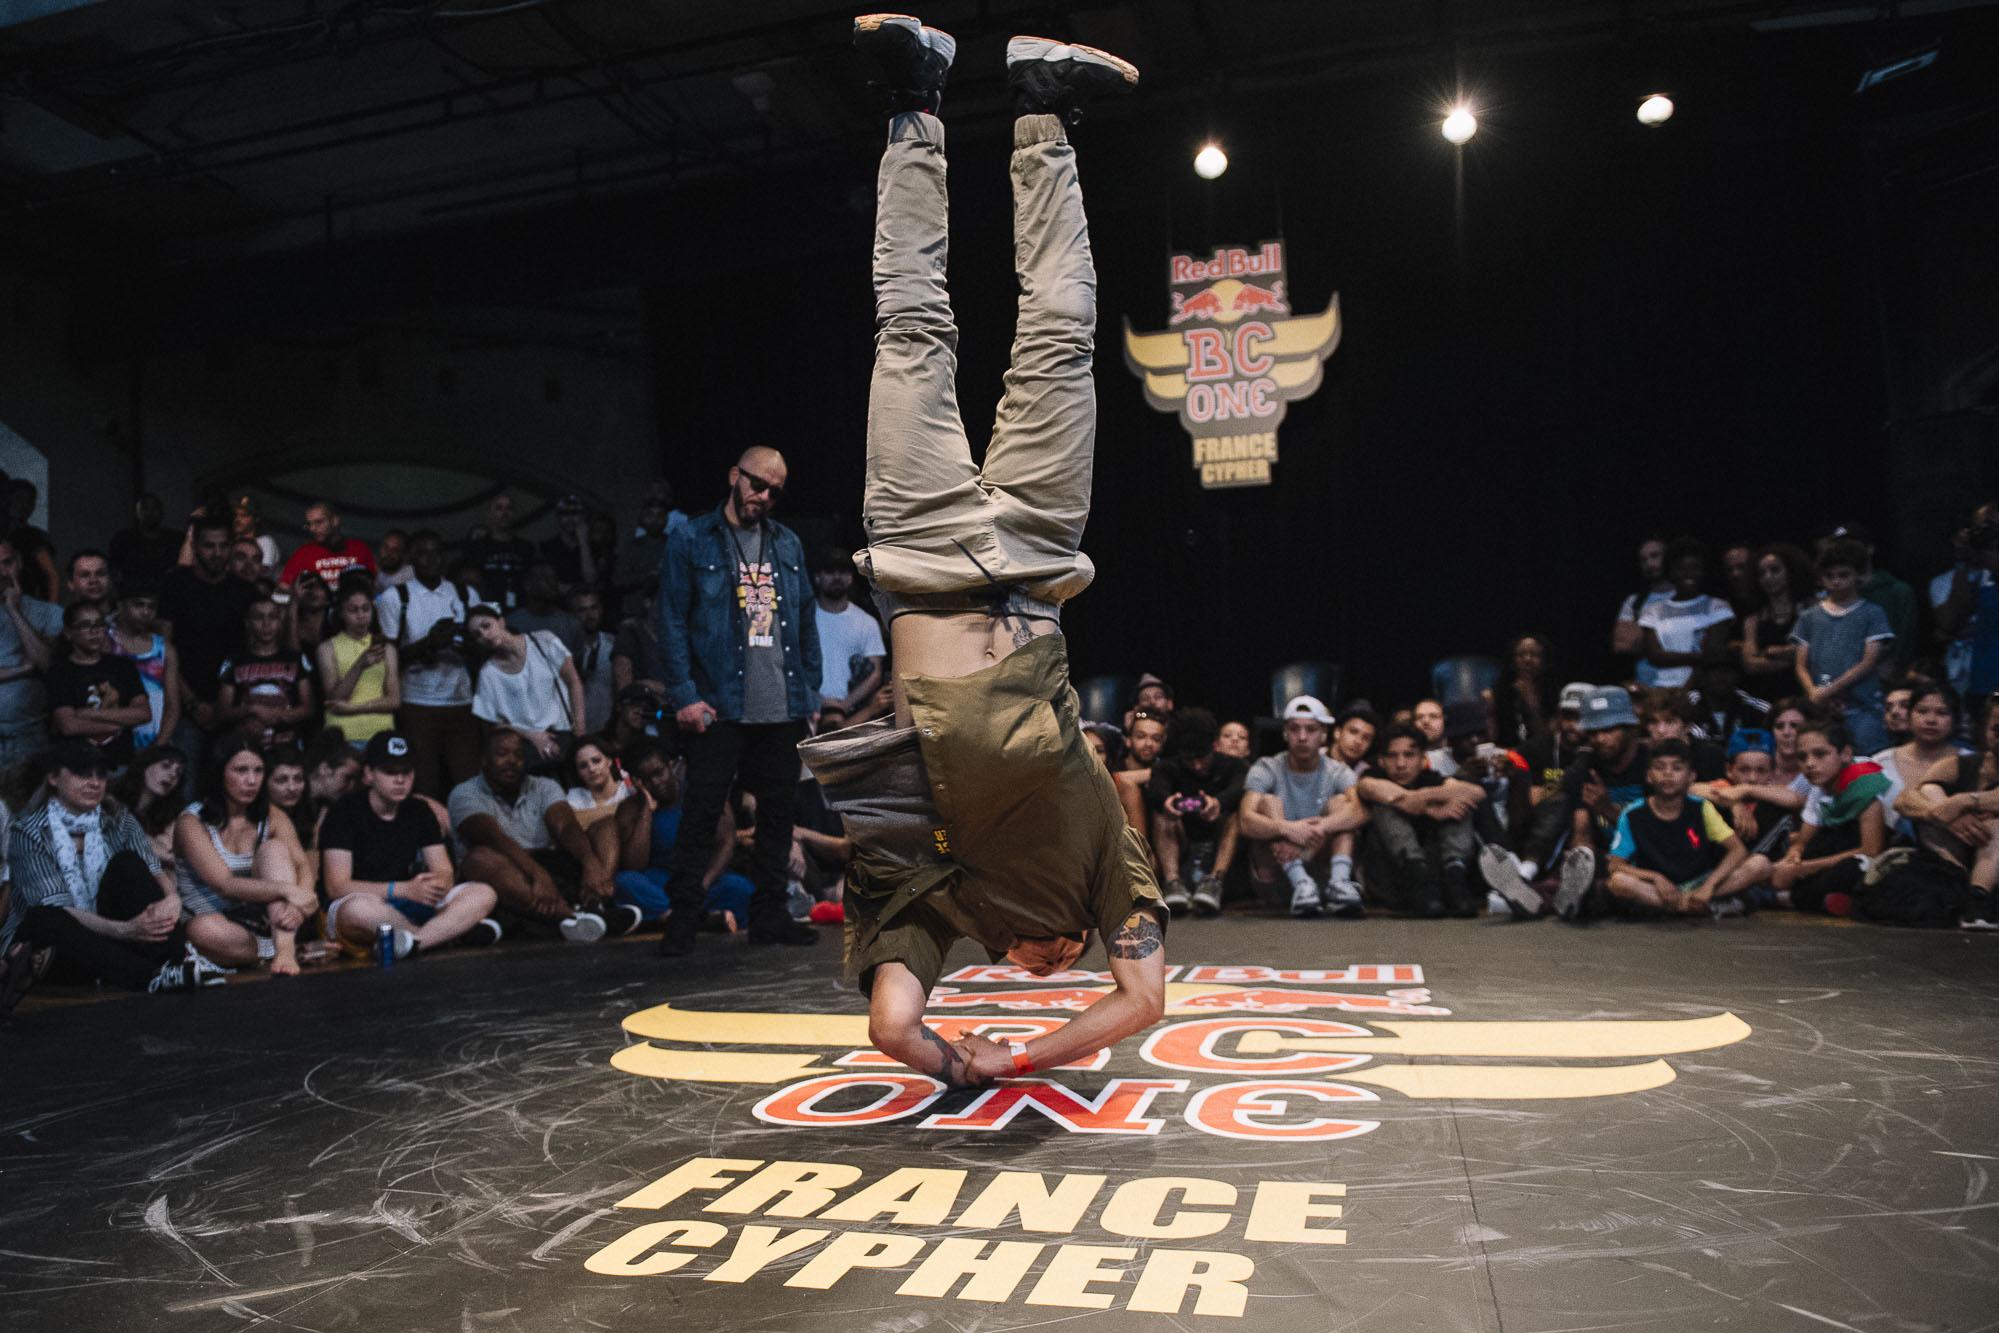 Hong Ten doing a judge demo at the WIP Villette during the Red Bull BC One France Cypher Final in Paris, France on July 10th 2016.